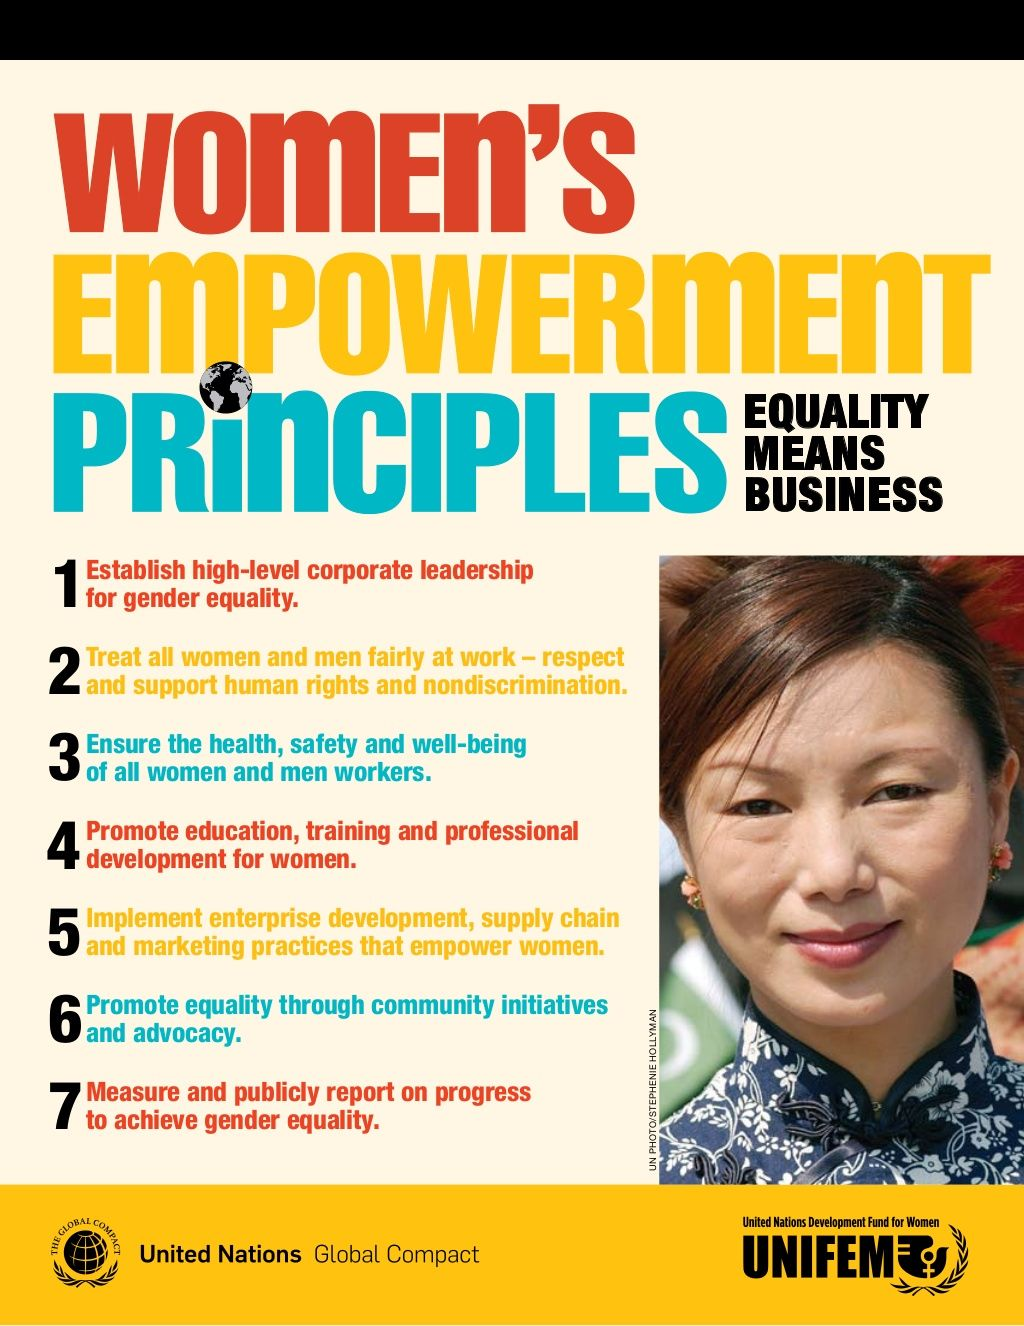 Women's Empowerment Principles by Dr Lendy Spires via